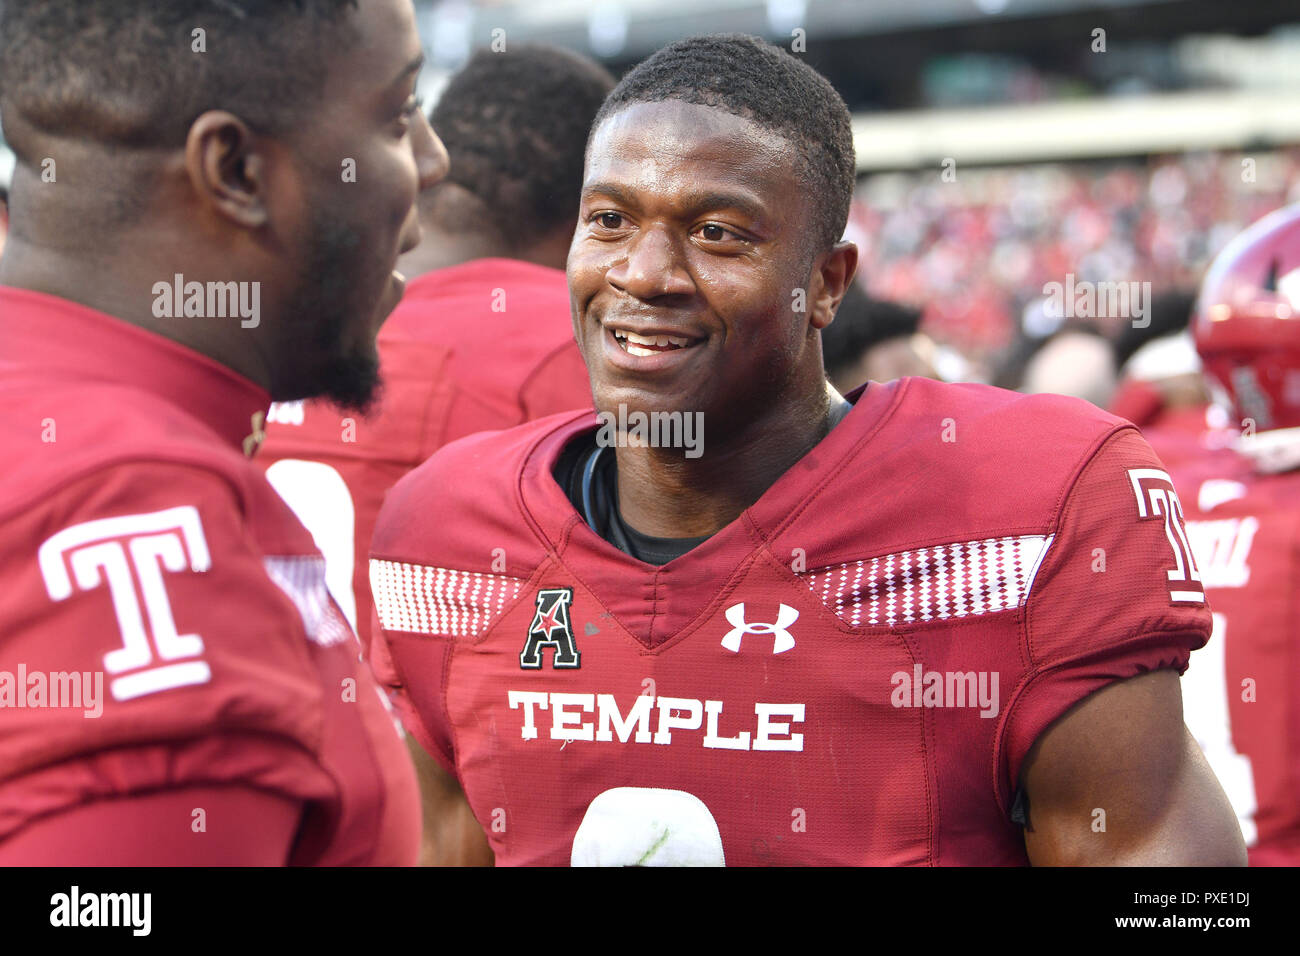 buy online a9ad7 6029f Philadelphia, Pennsylvania, USA. 20th Oct, 2018. Temple Owls ...